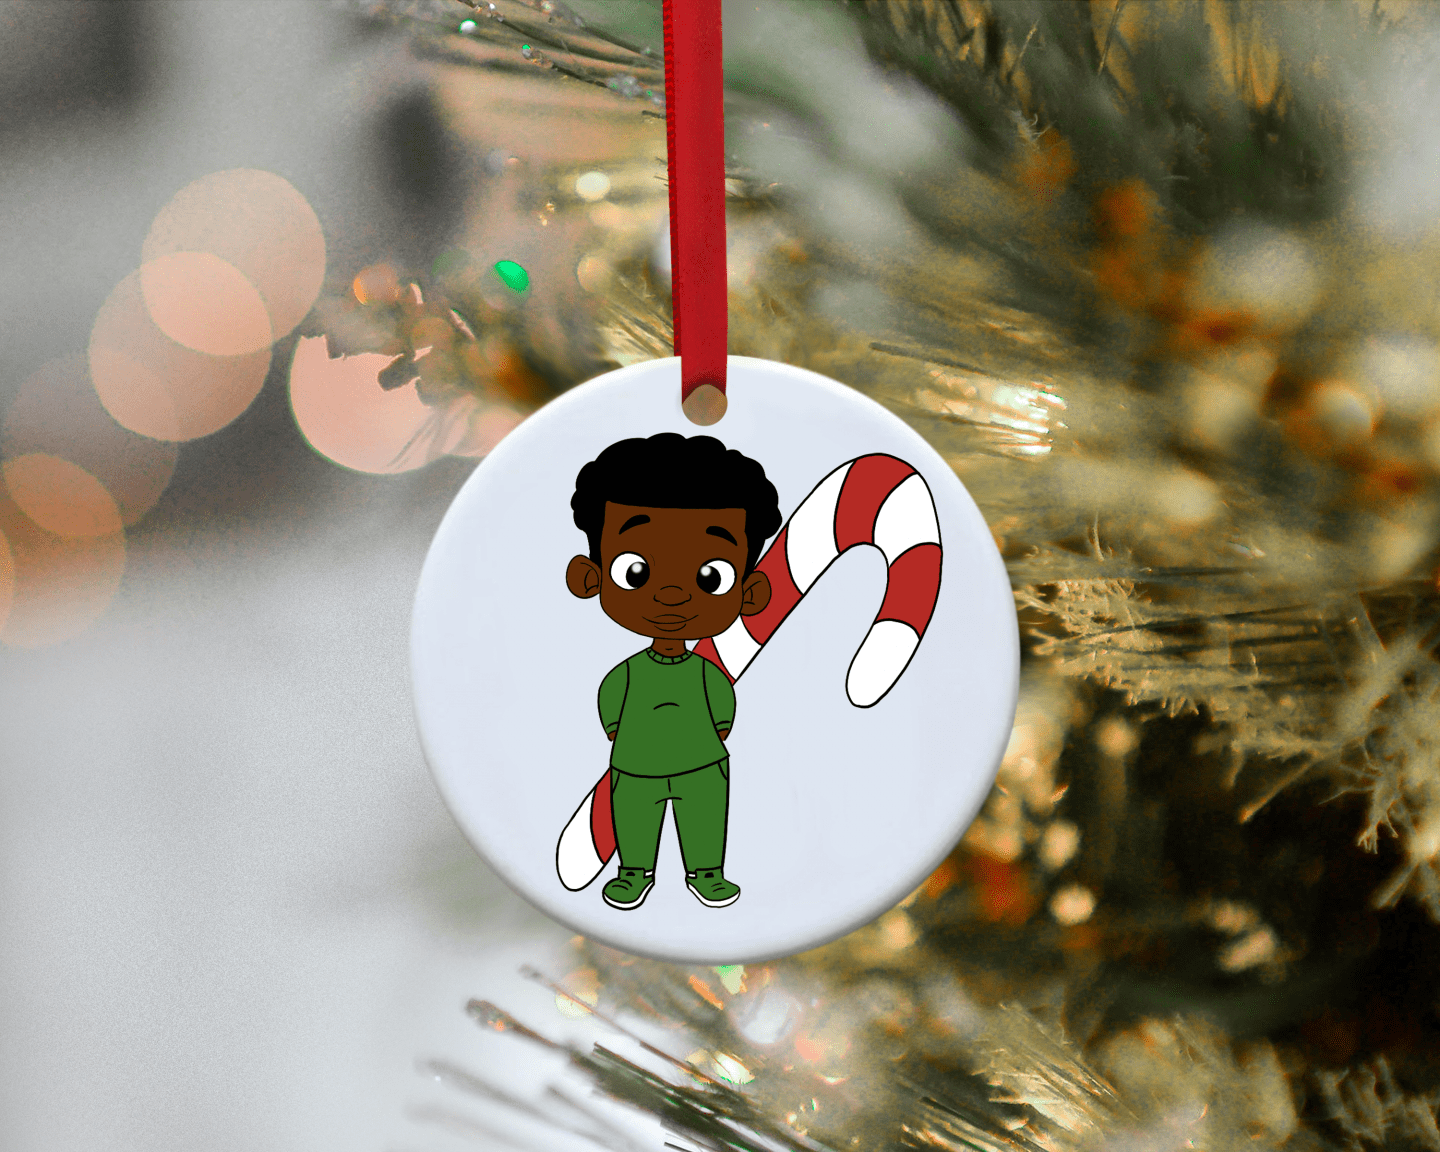 issa-Holiday-Boy-Candy-cane-2-ornament-1-1440x1152 Issa Wrap, Holiday Ornaments Showcase Holidays Through Heritage